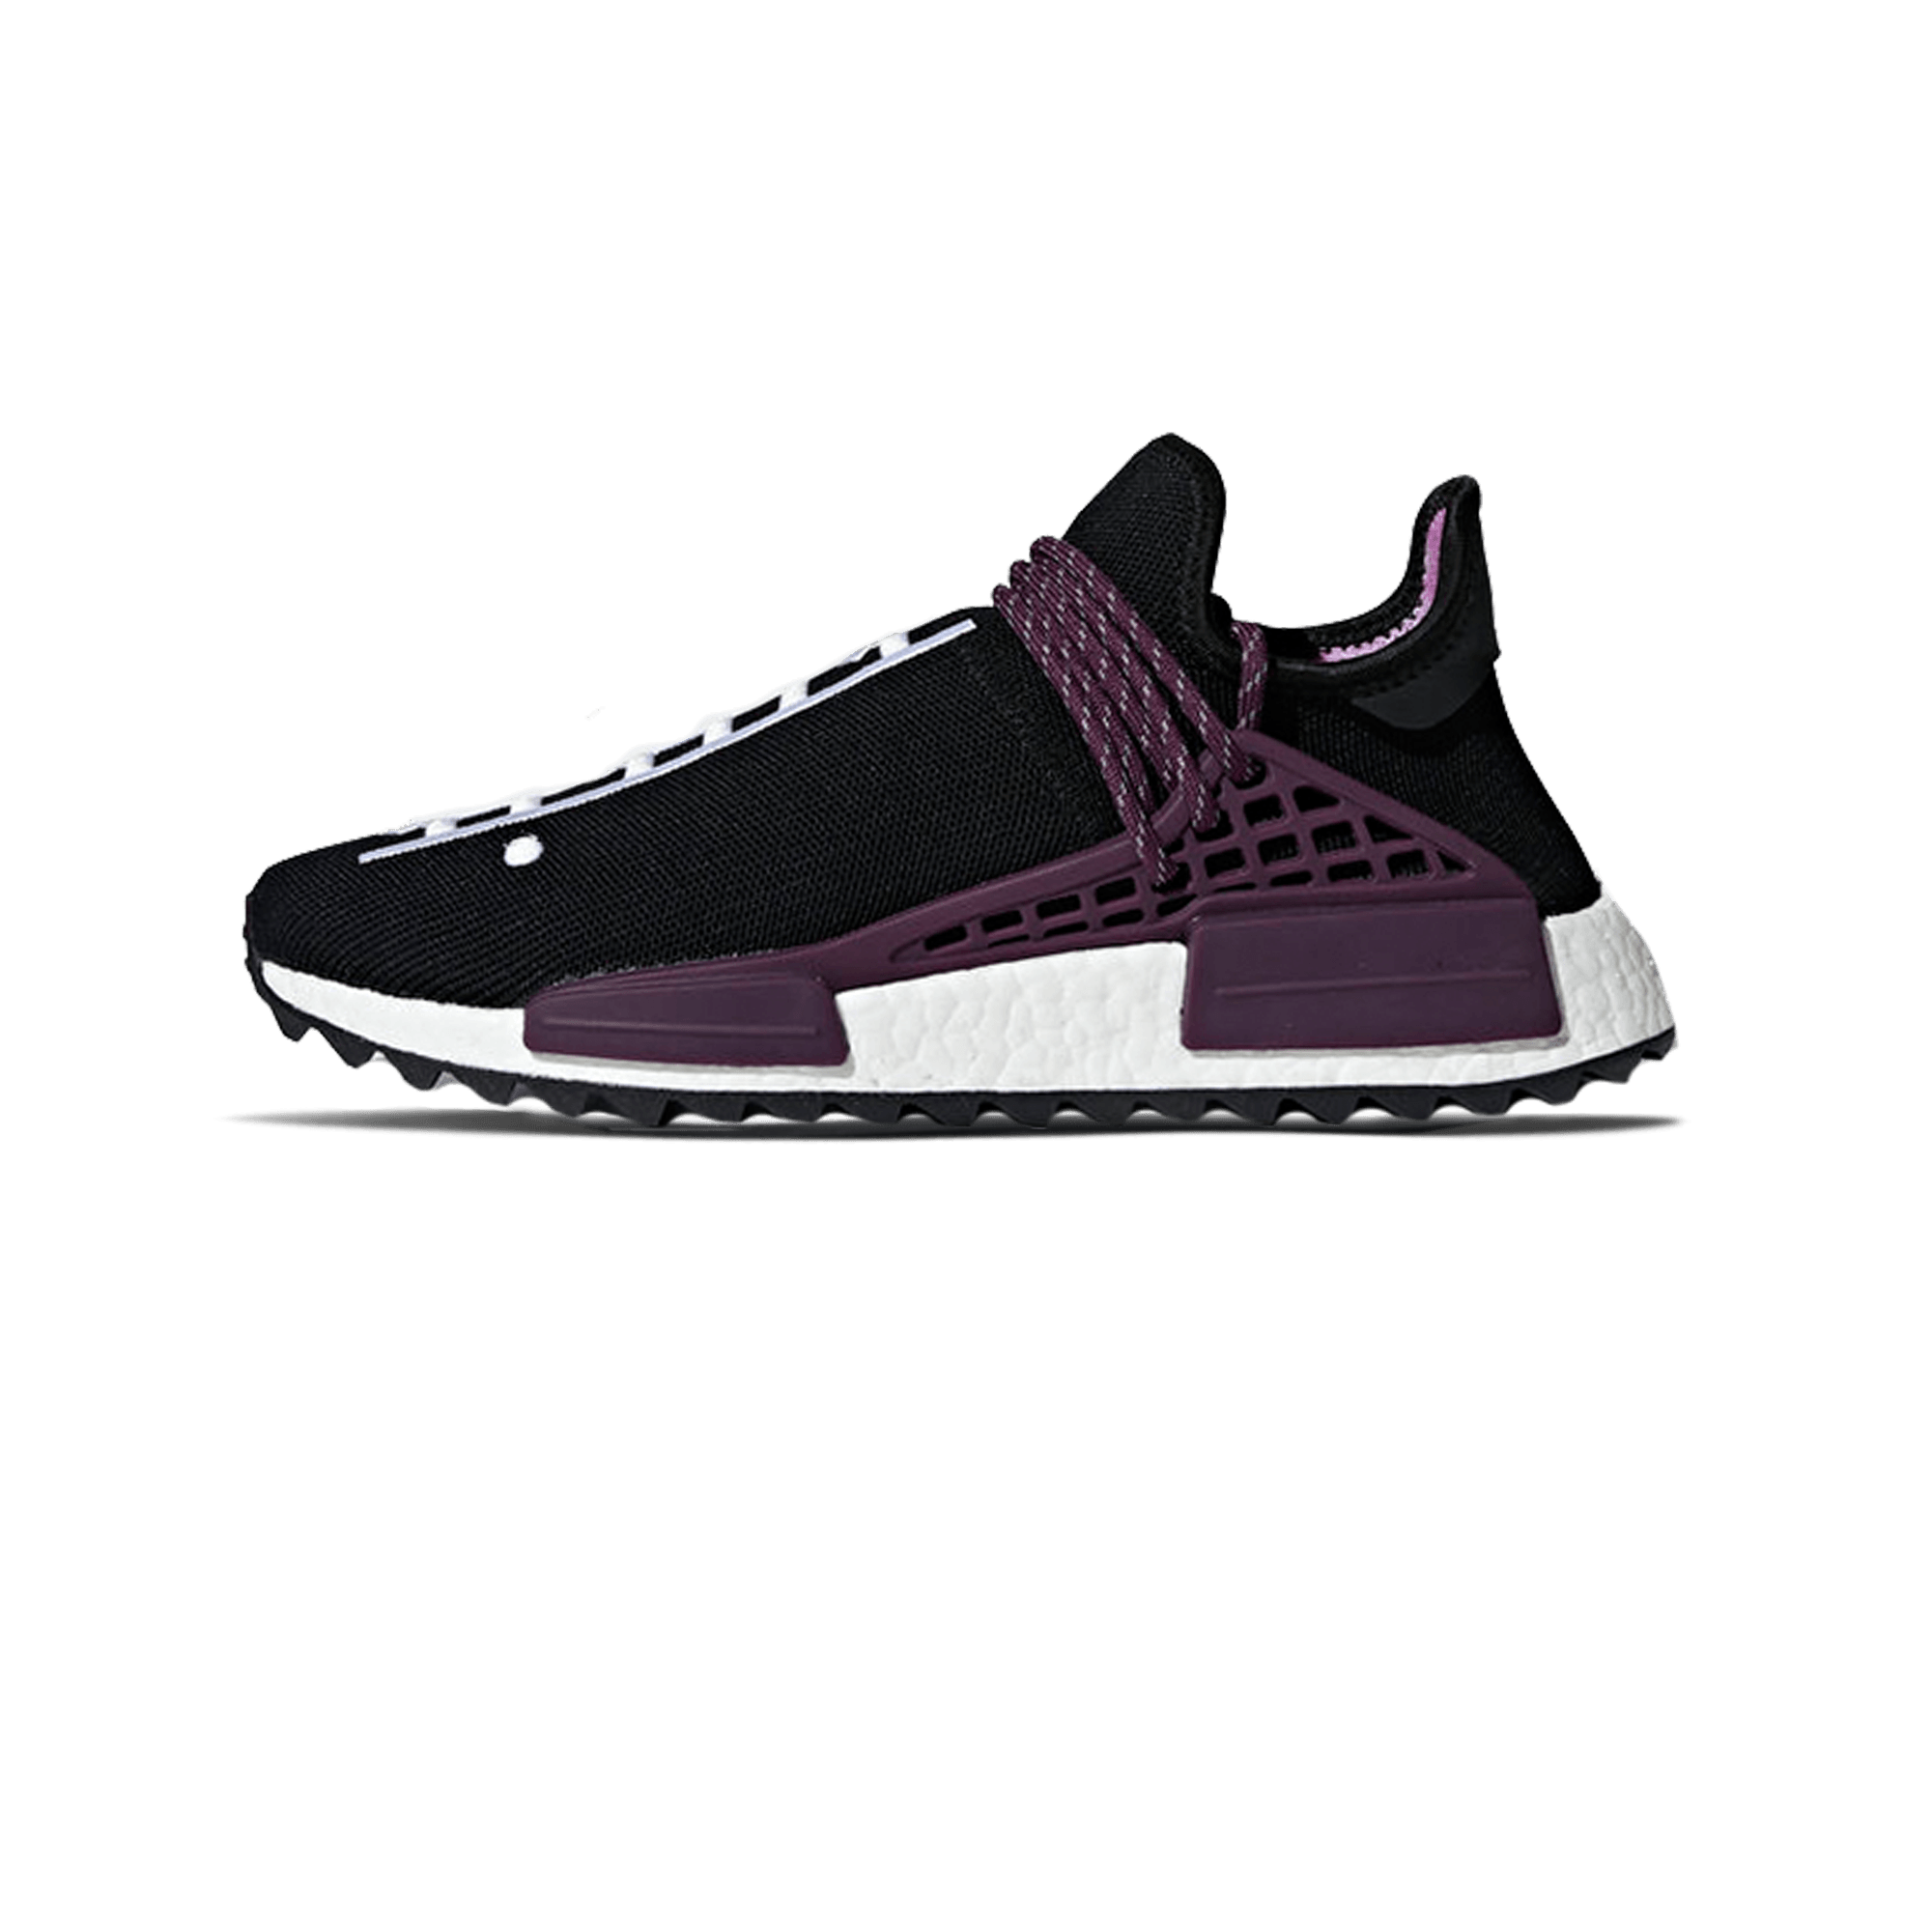 meilleures baskets e5849 ad2ca adidas PW Hu Holi NMD MC black / purple - Men | Holypopstore.com